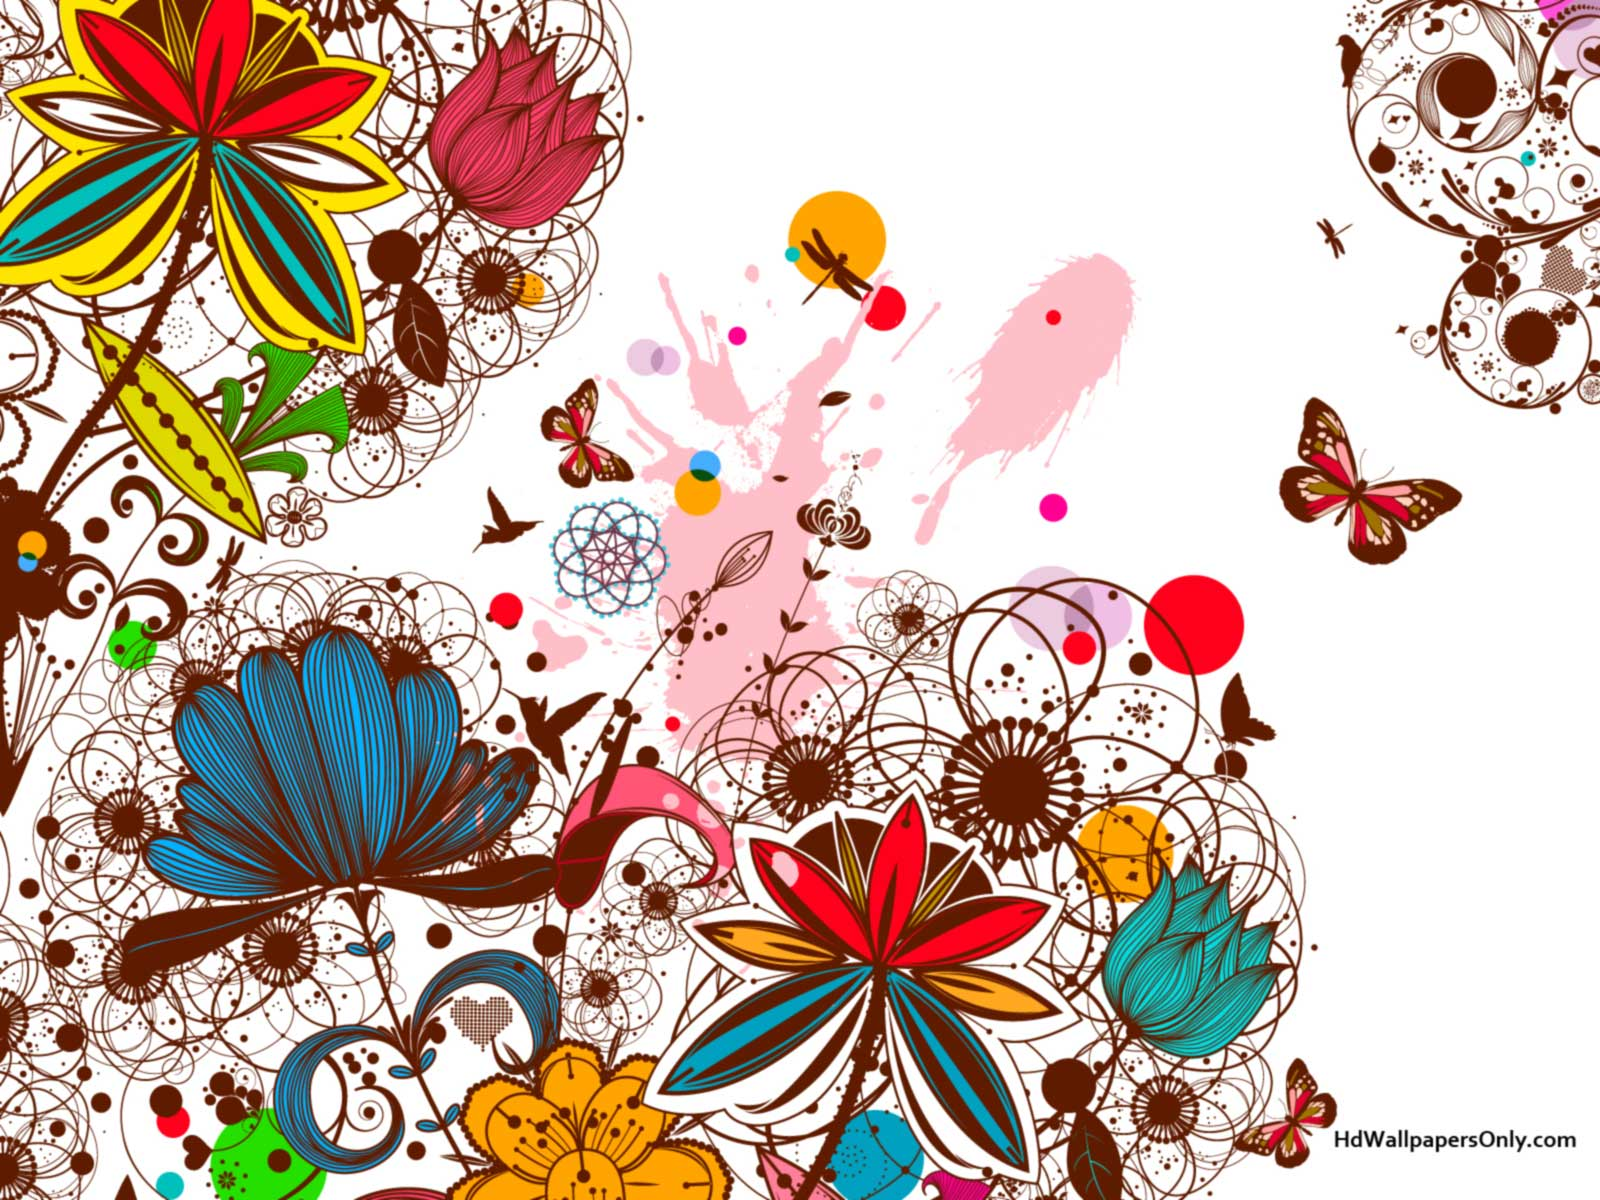 Floral background designs hd qualityhd wallpapers only Designs com